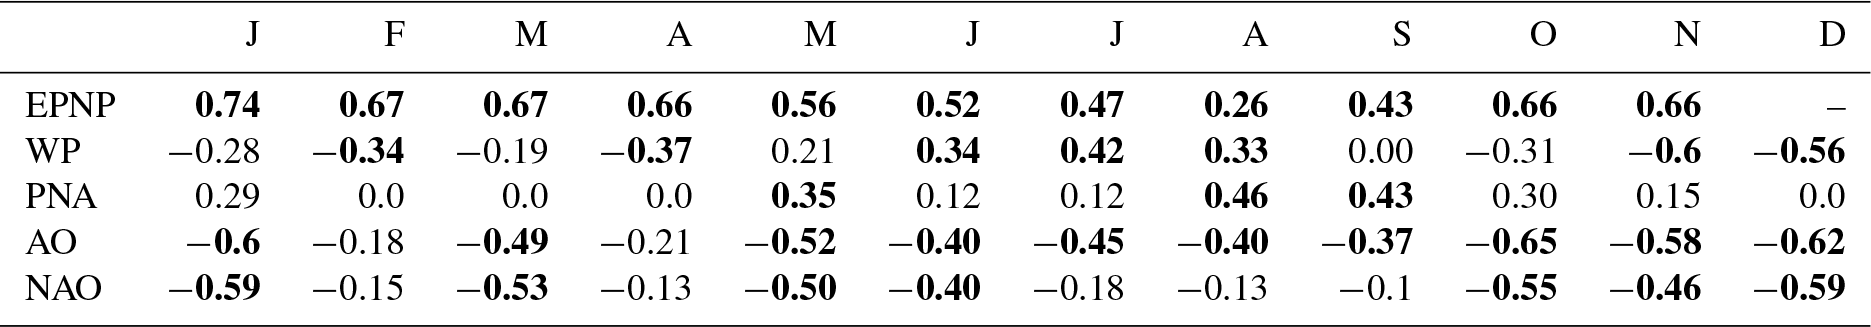 OS - Long Island Sound temperature variability and its associations